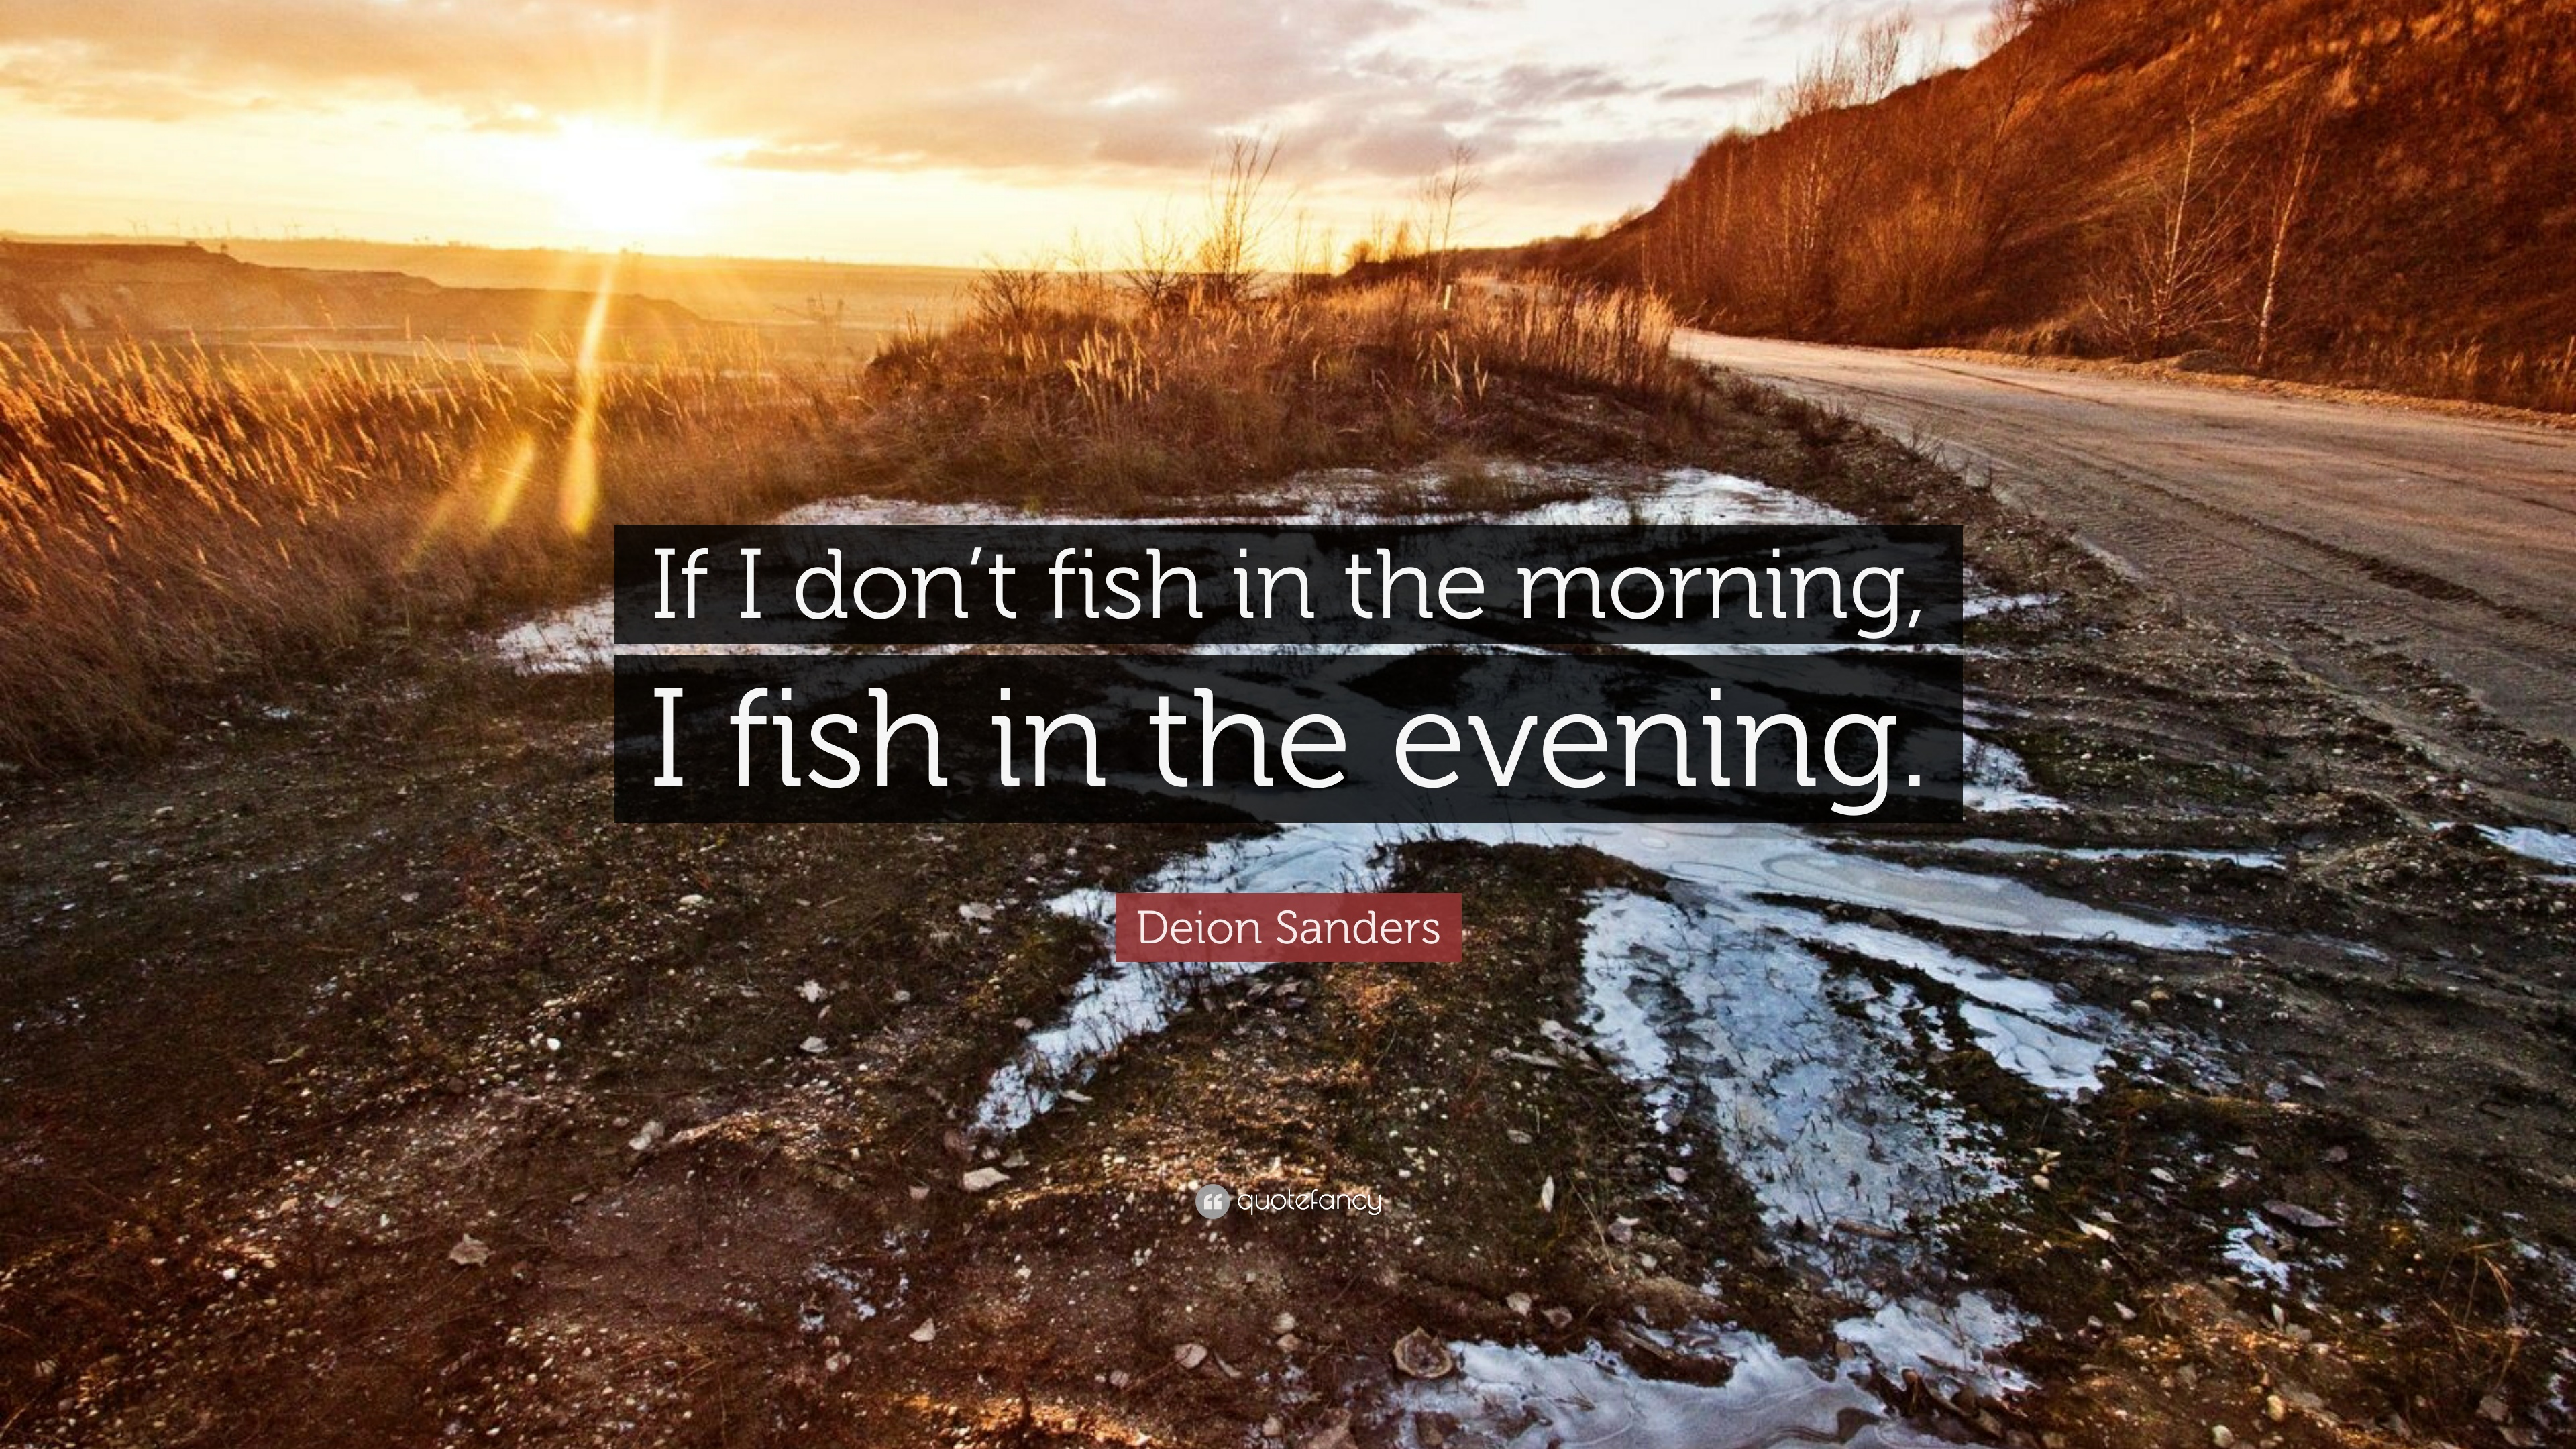 Deion Sanders Quote If I Dont Fish In The Morning I Fish In The